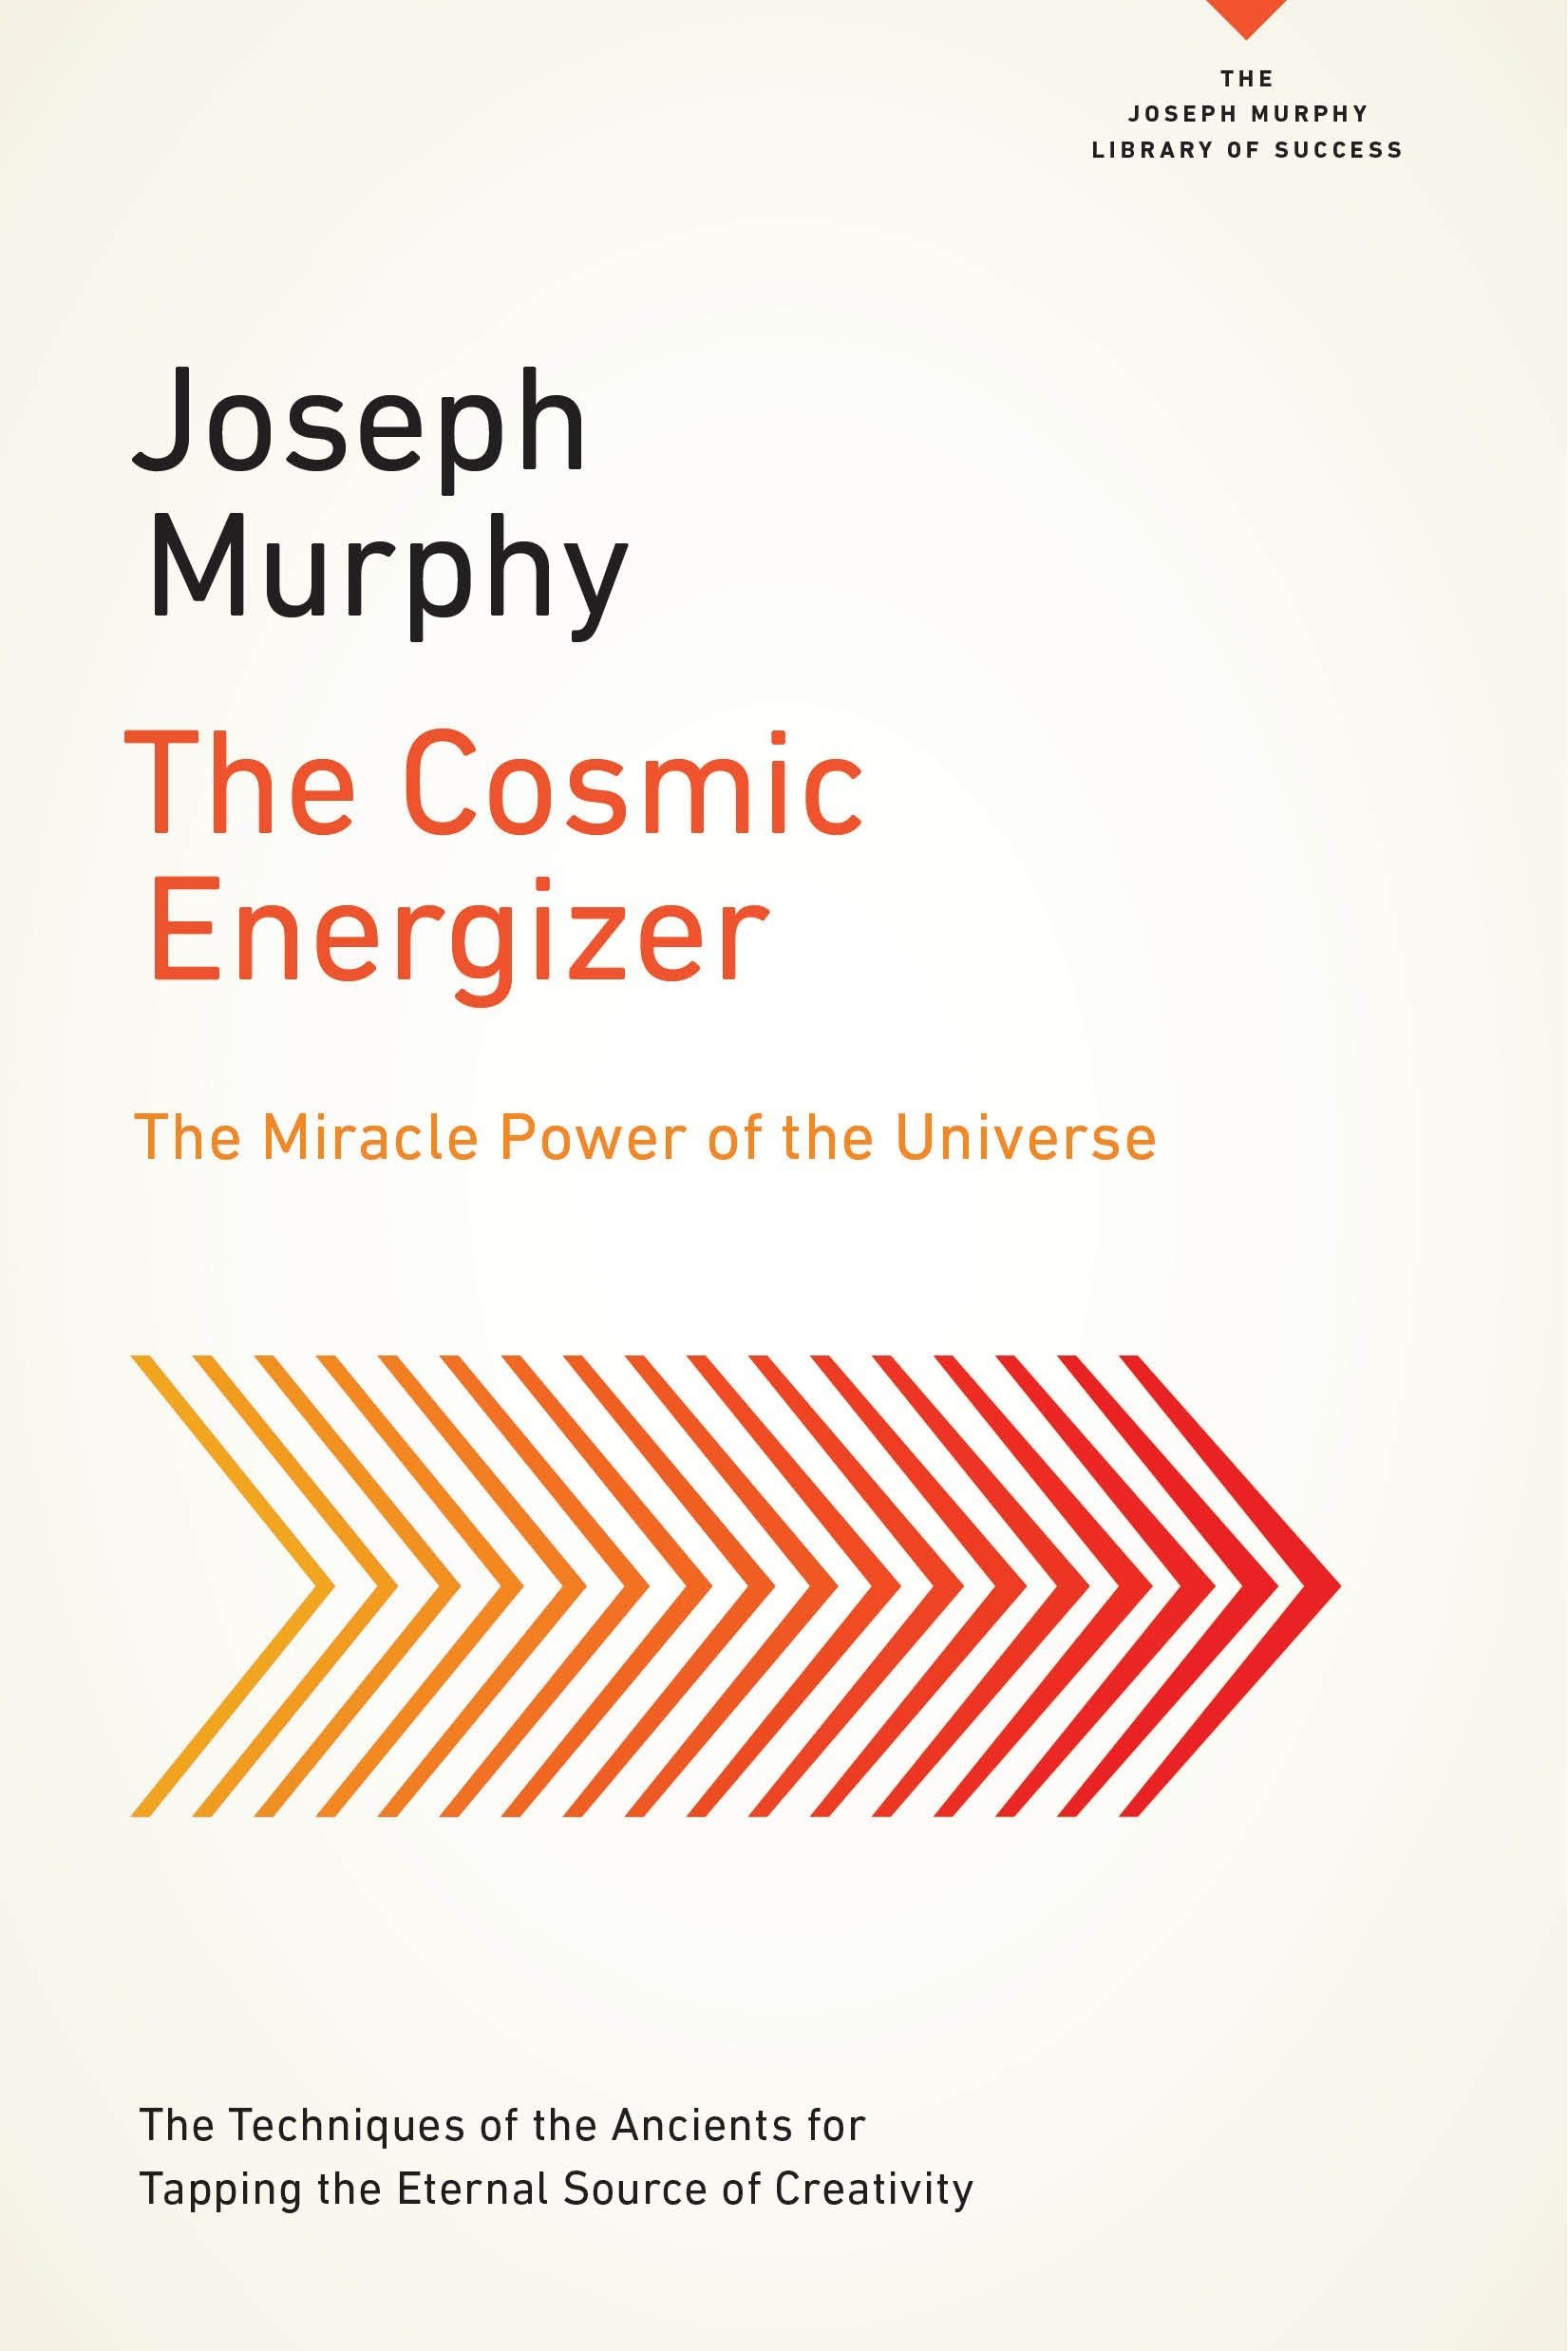 The Cosmic Energizer: The Miracle Power of the Universe (The Joseph Murphy Library of Success Series) ebook